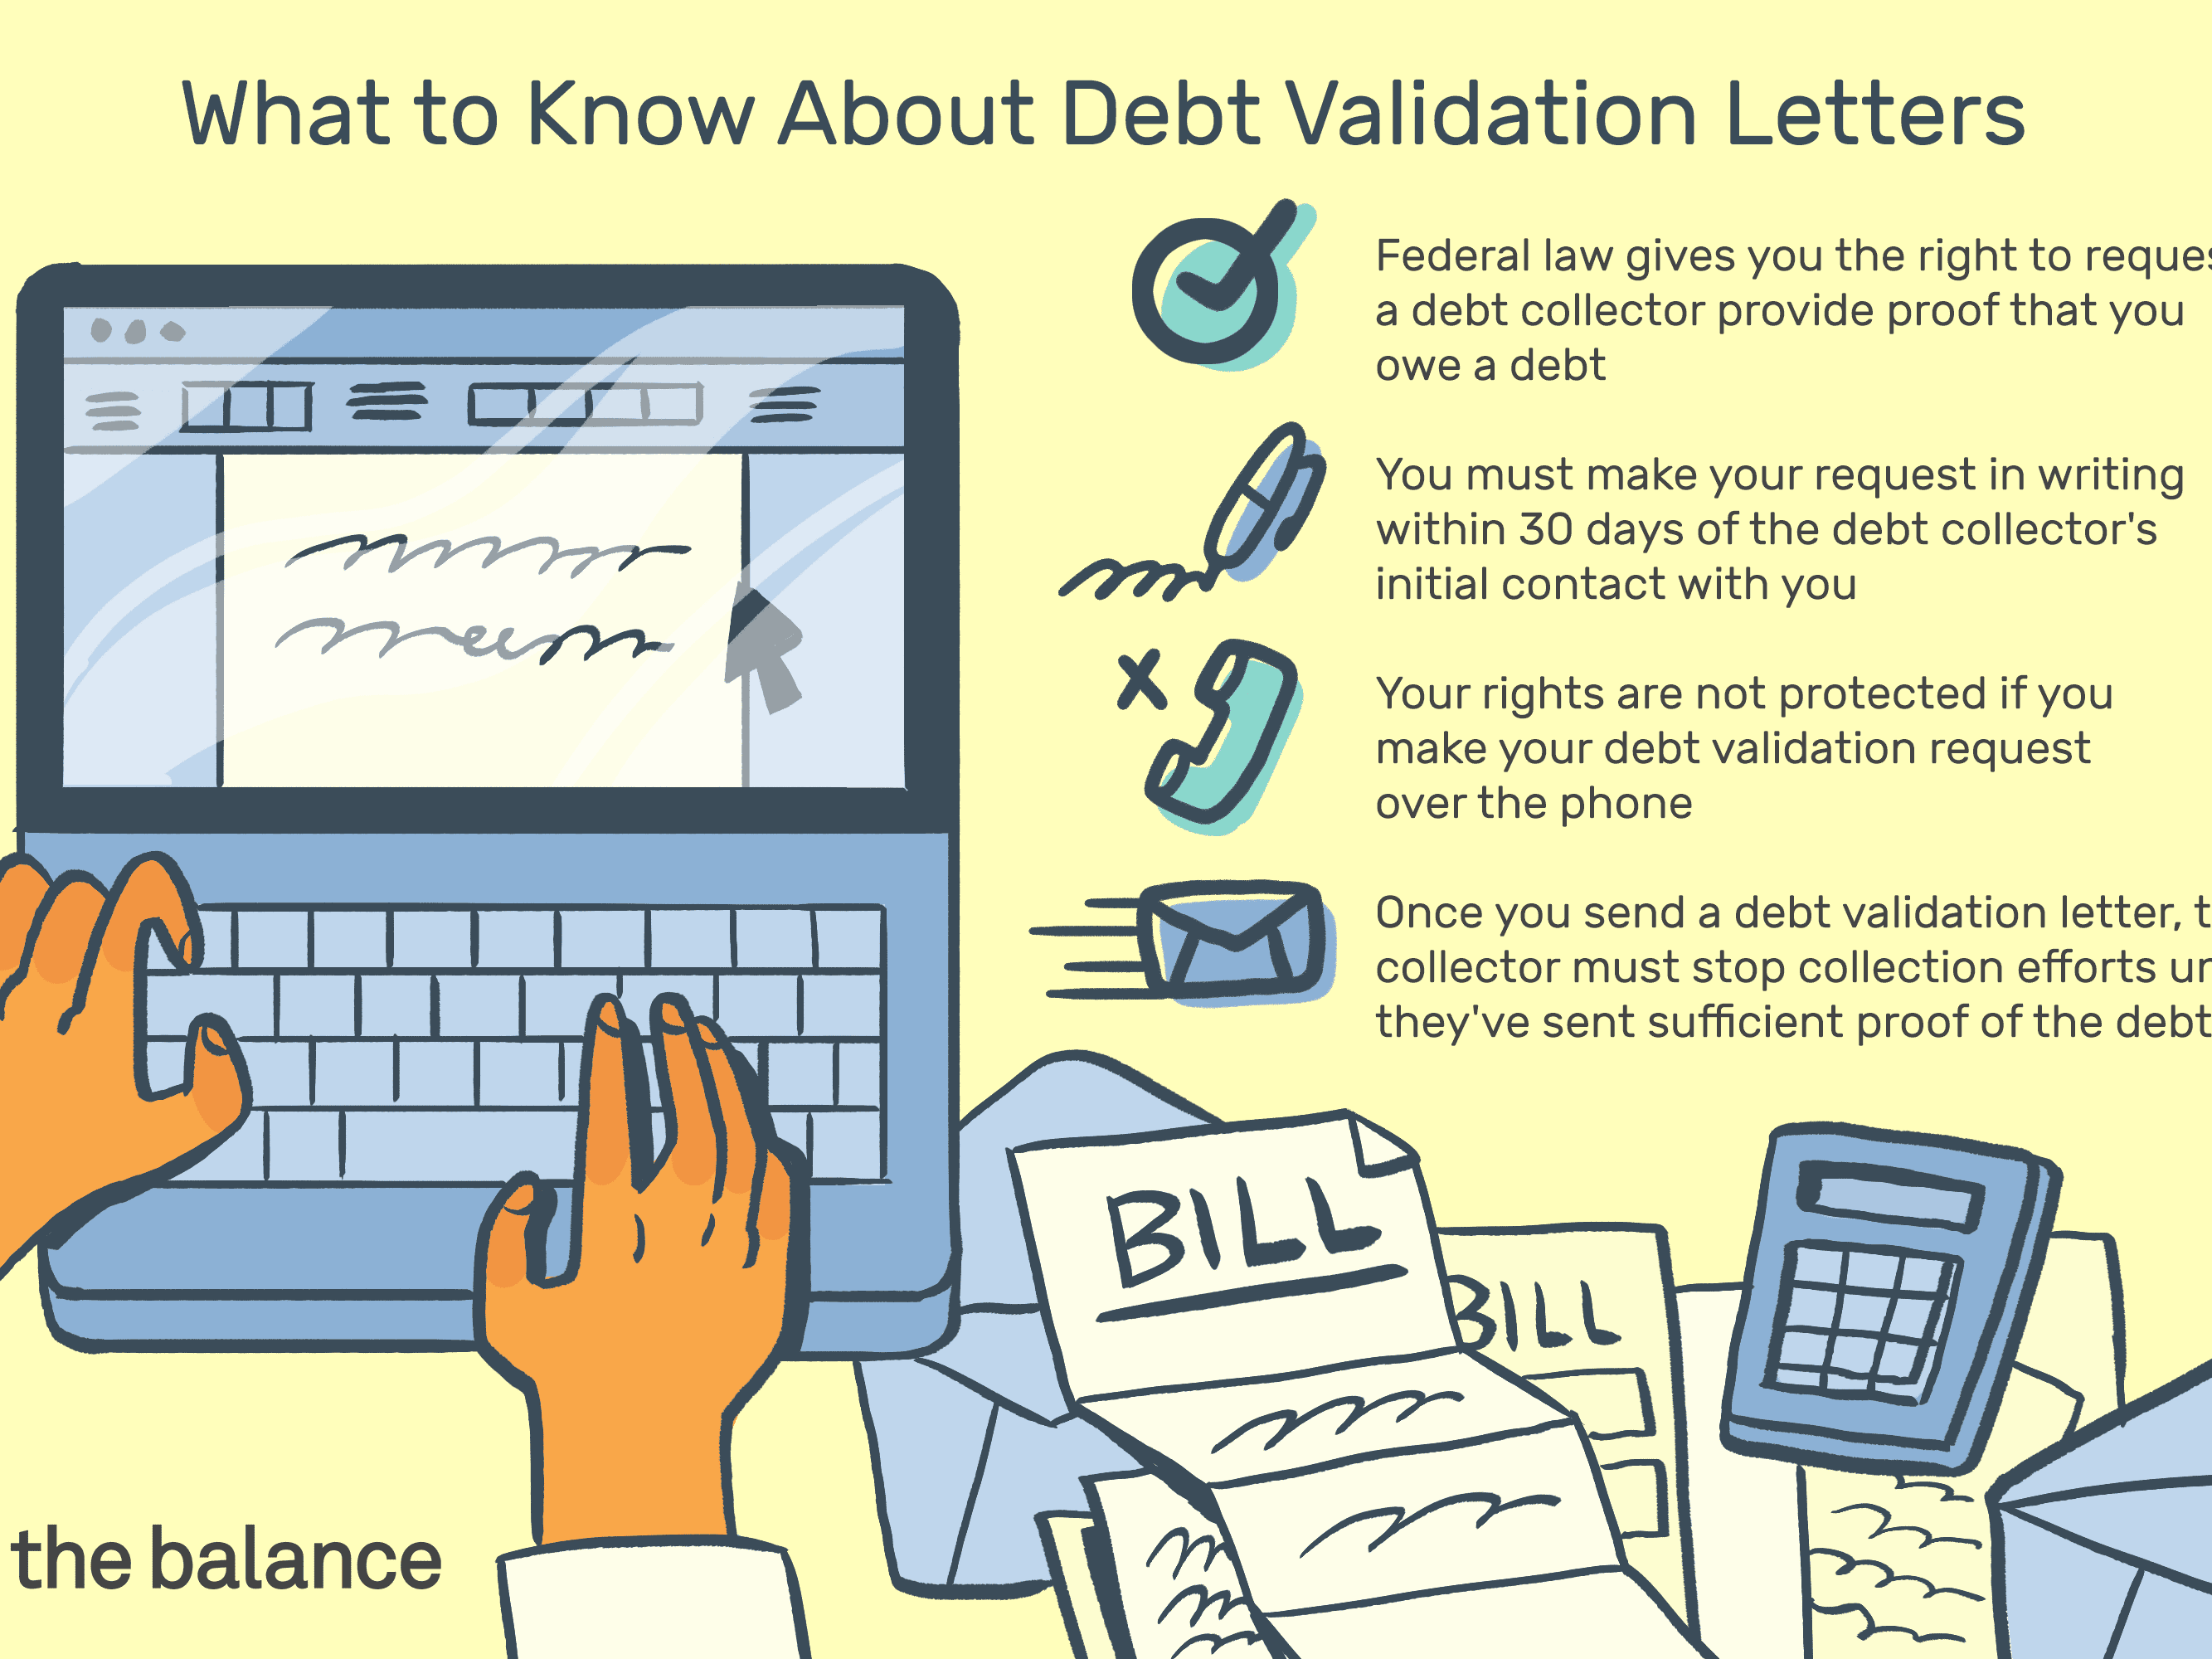 Debt Collection Dispute Letter Template from www.thebalance.com